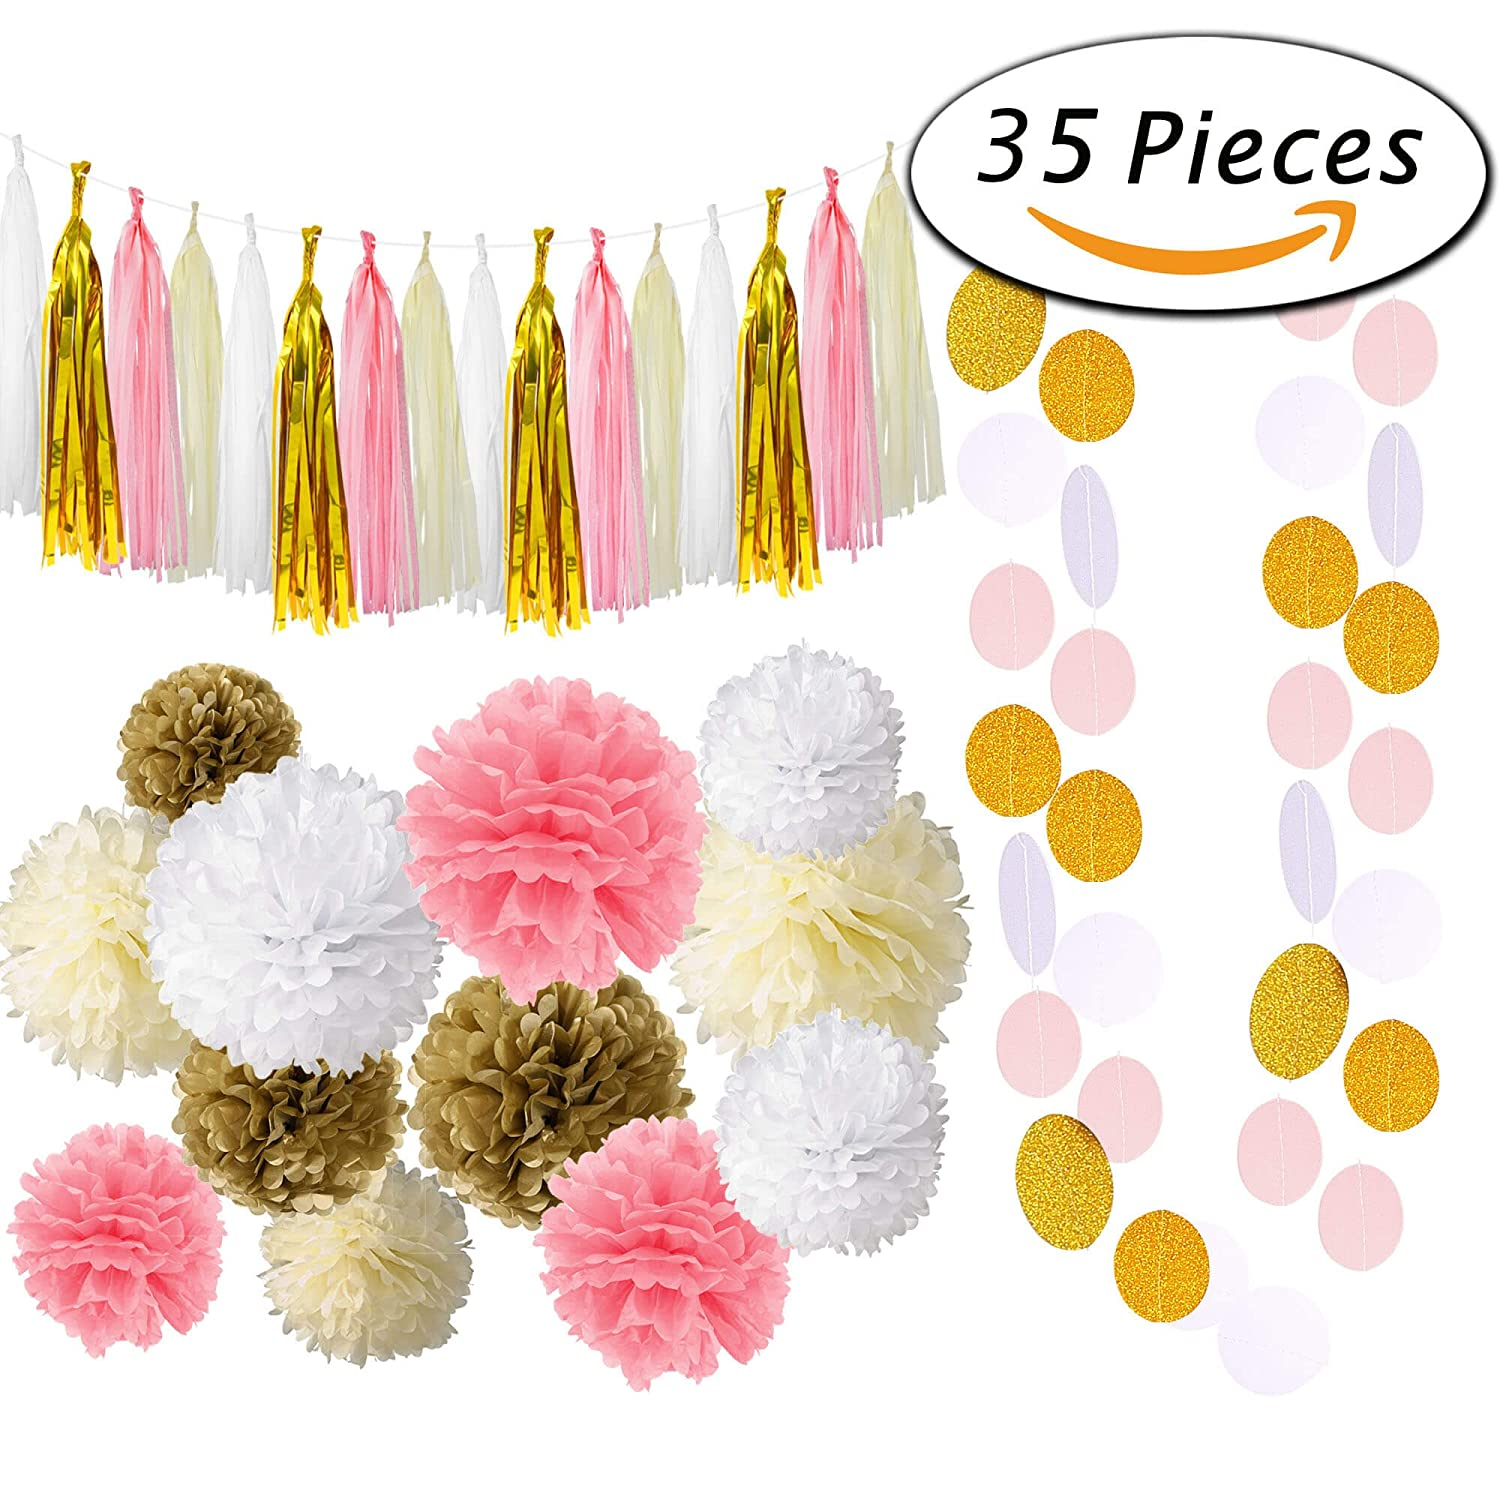 Gold color cardstock paper 5x7 - Paxcoo 35 Pcs Pink Gold Cream Tissue Pom Poms Paper Flowers Tissue Tassel Polka Dot Garland For 1st Birthday Baby Shower Decorations